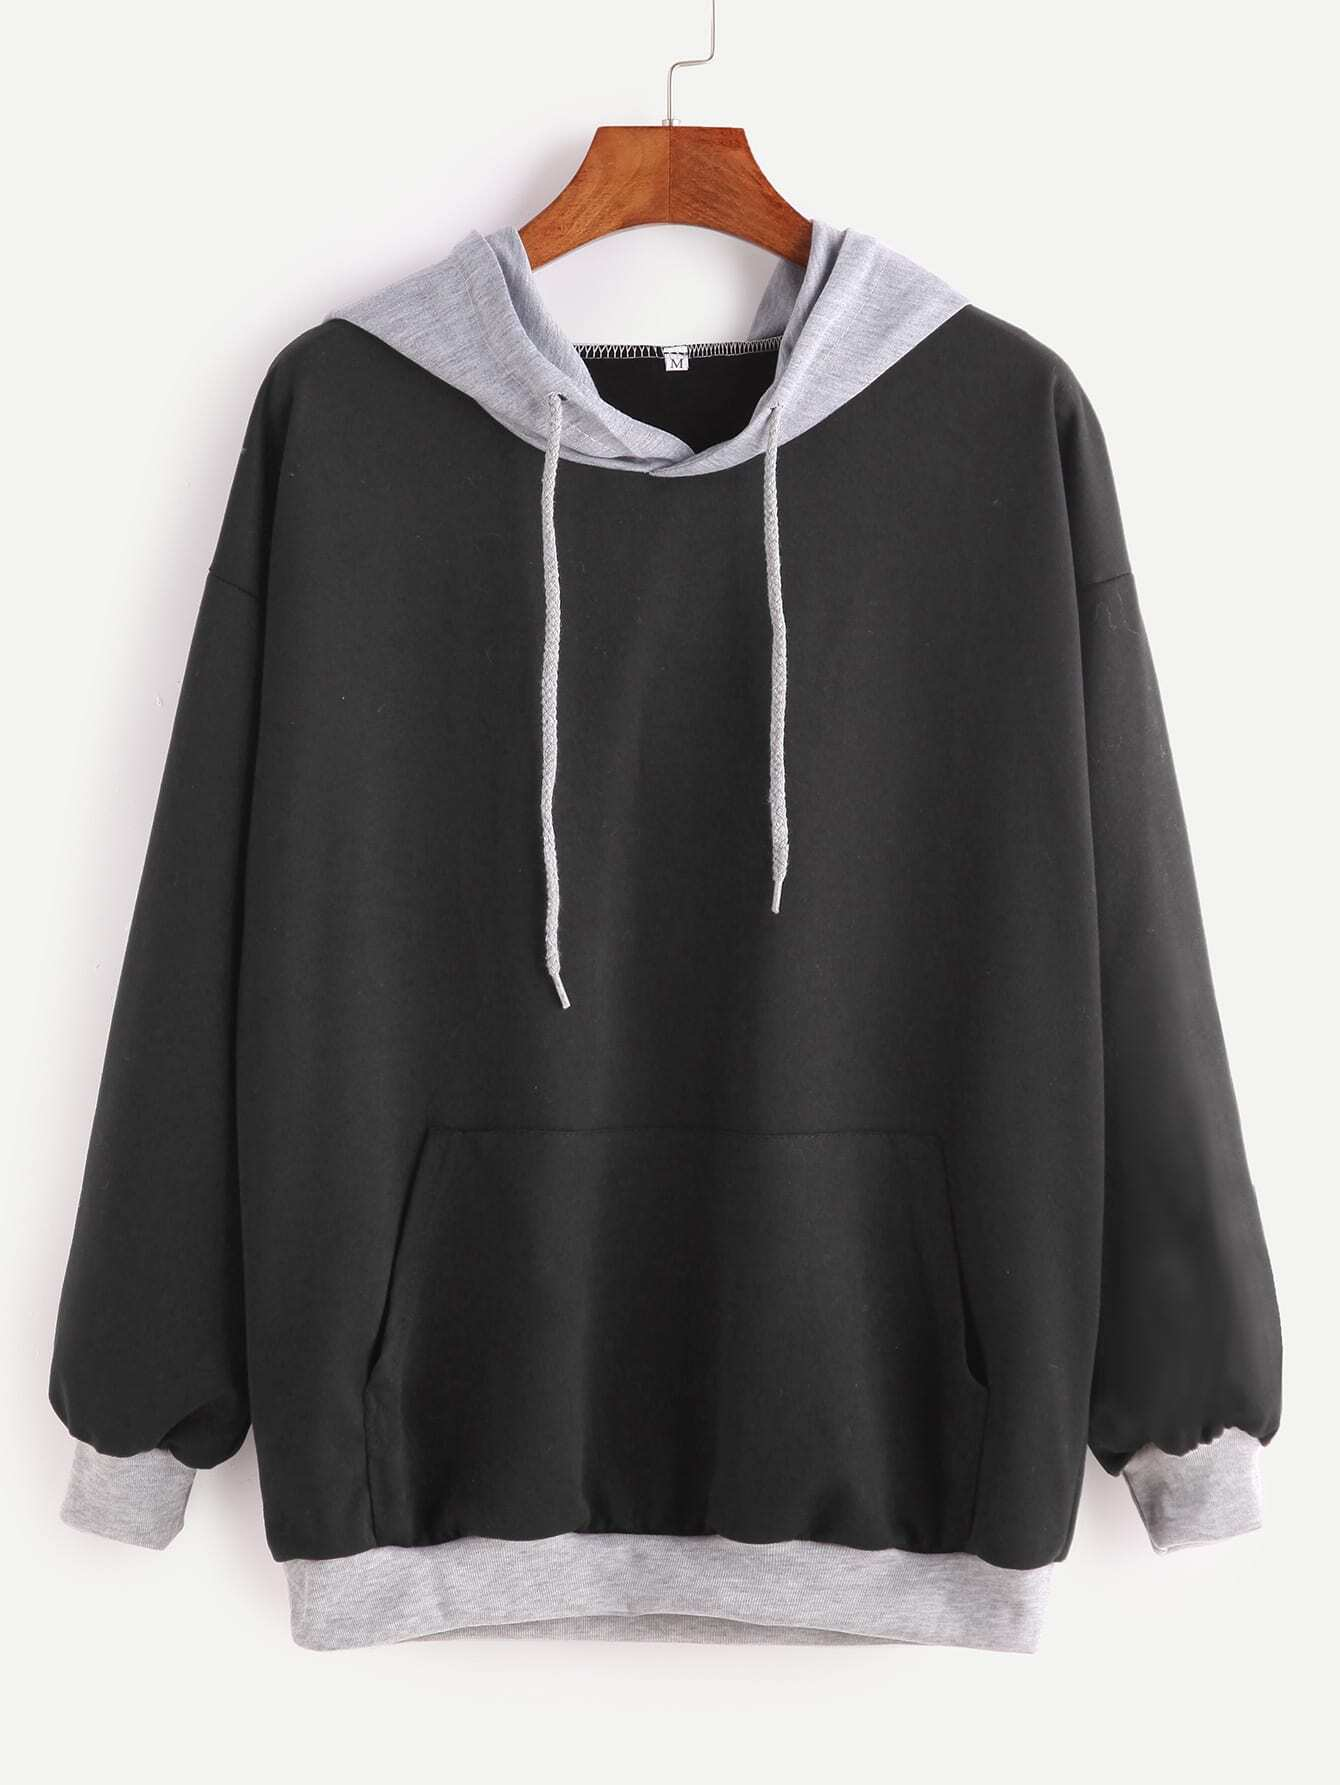 Black Contrast Drop Shoulder Drawstring Hooded Pocket Sweatshirt